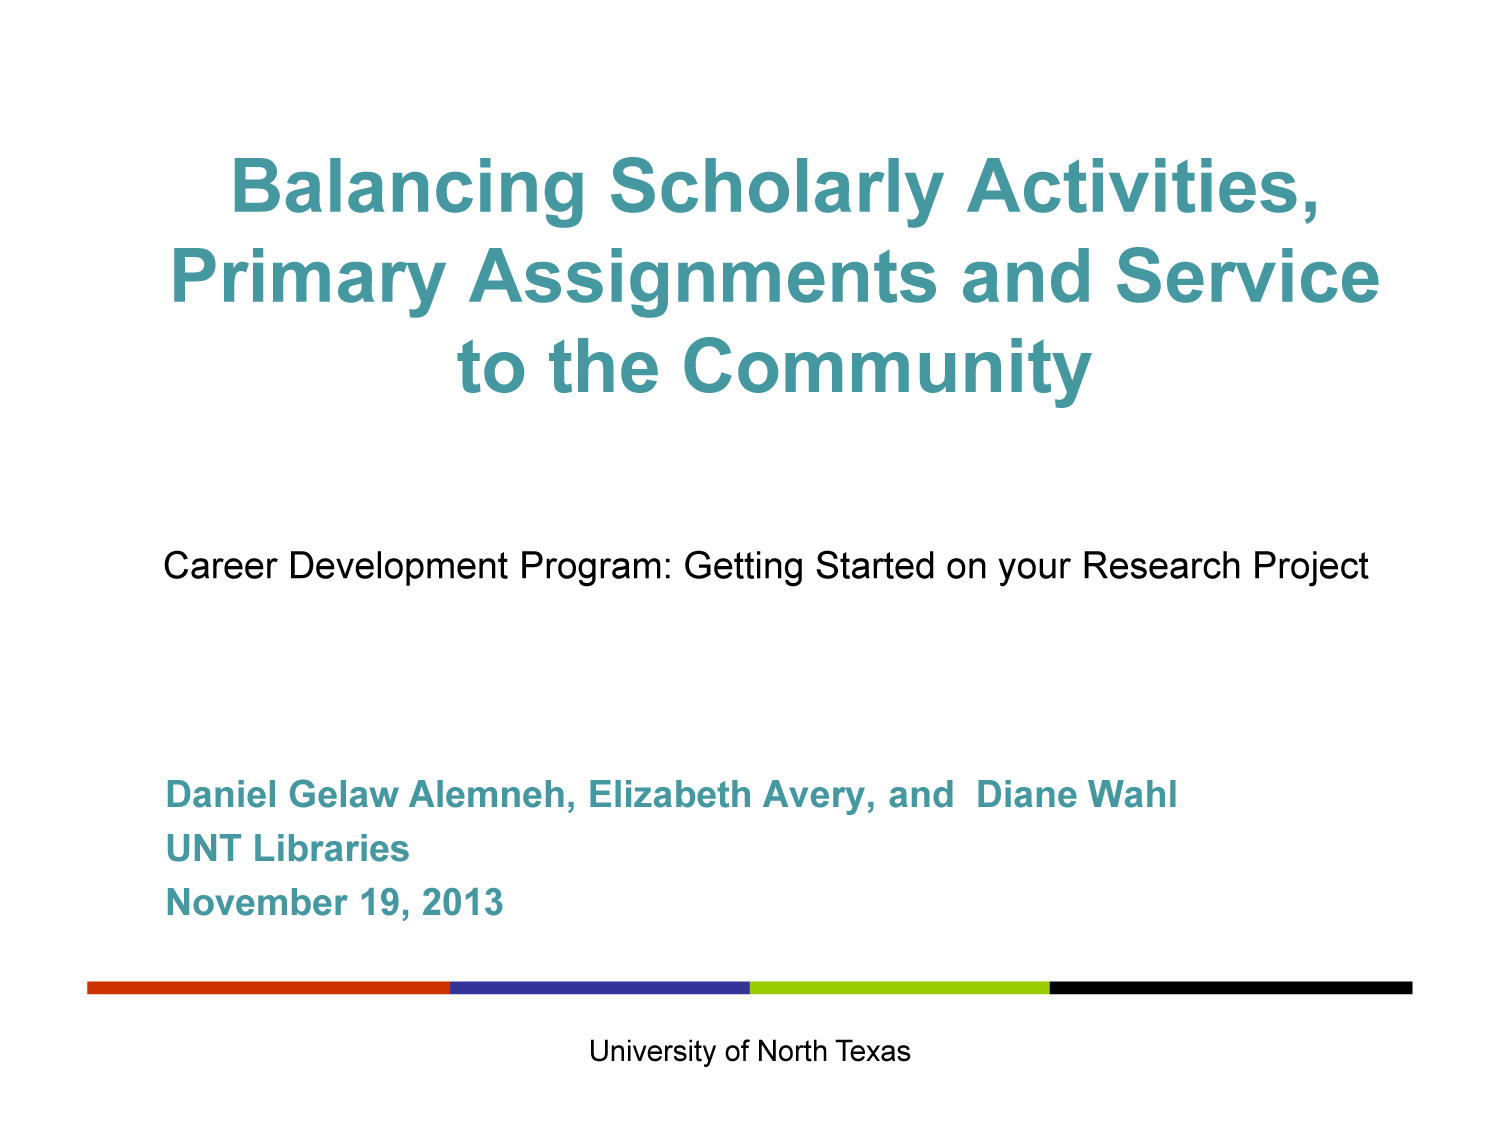 Balancing Scholarly Activities, Primary Assignments and Service to the Community                                                                                                      [Sequence #]: 1 of 8